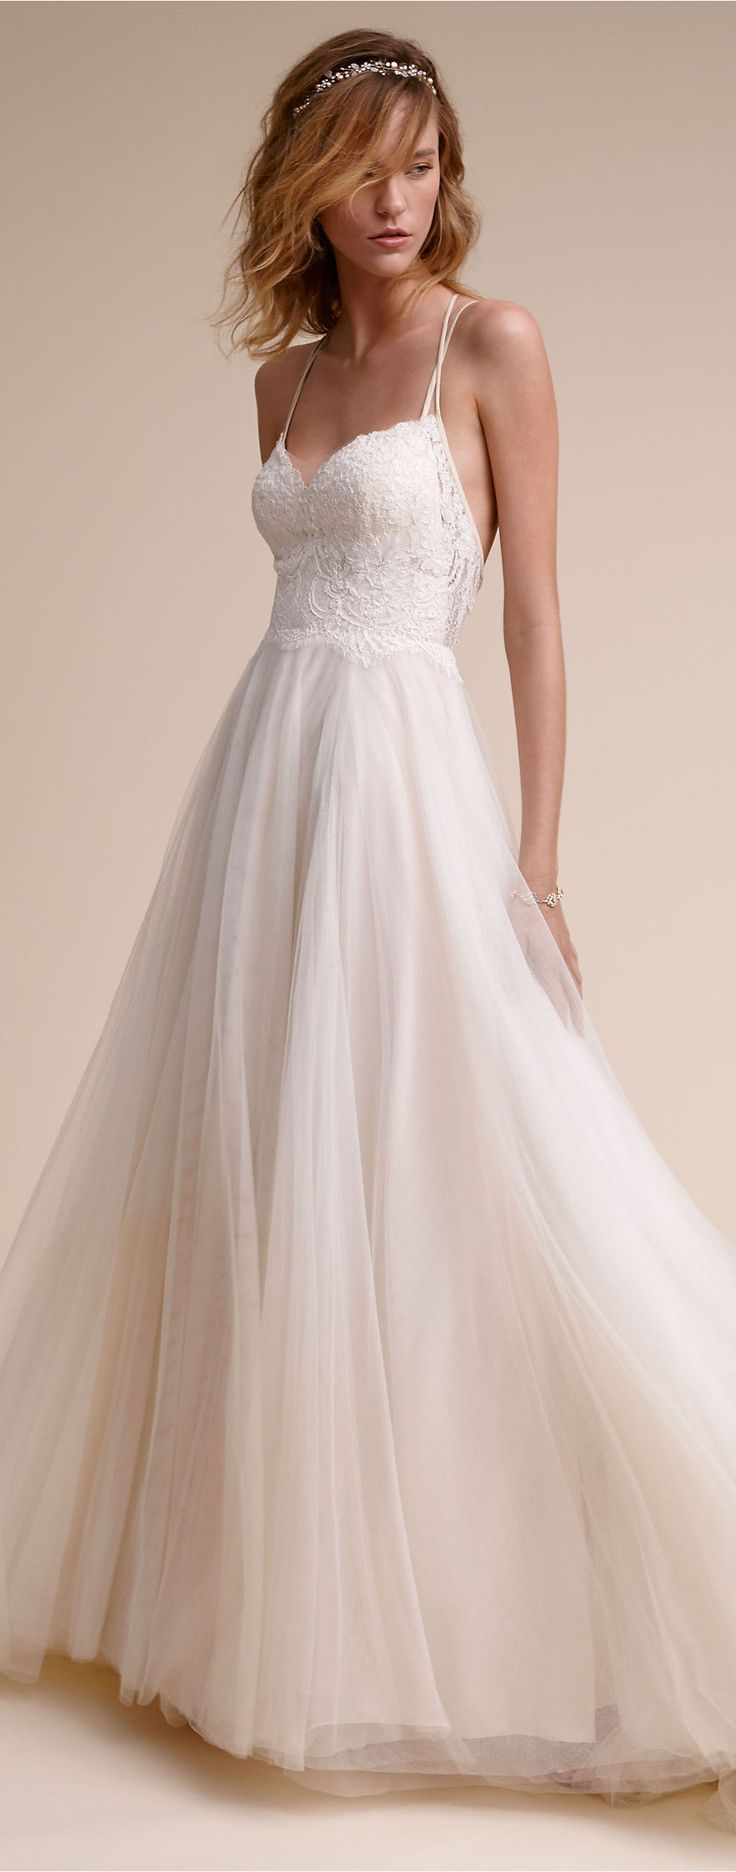 Wedding dress rosalind bridal gown wedding inspiration in